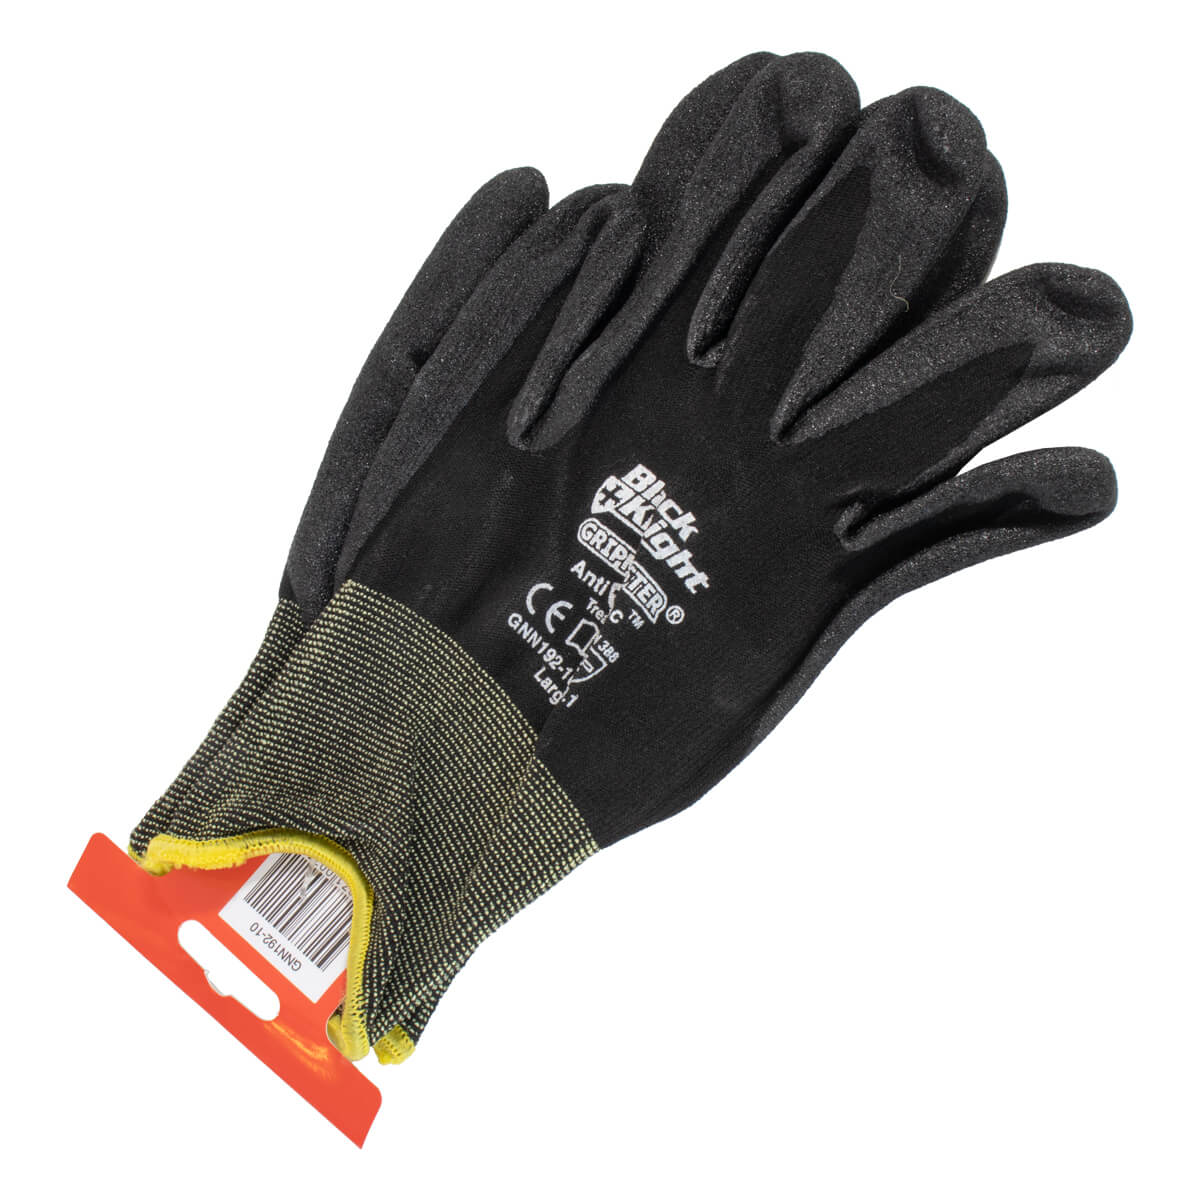 Gloves Synthetic Coated Gripmaster Large MaxiSafe